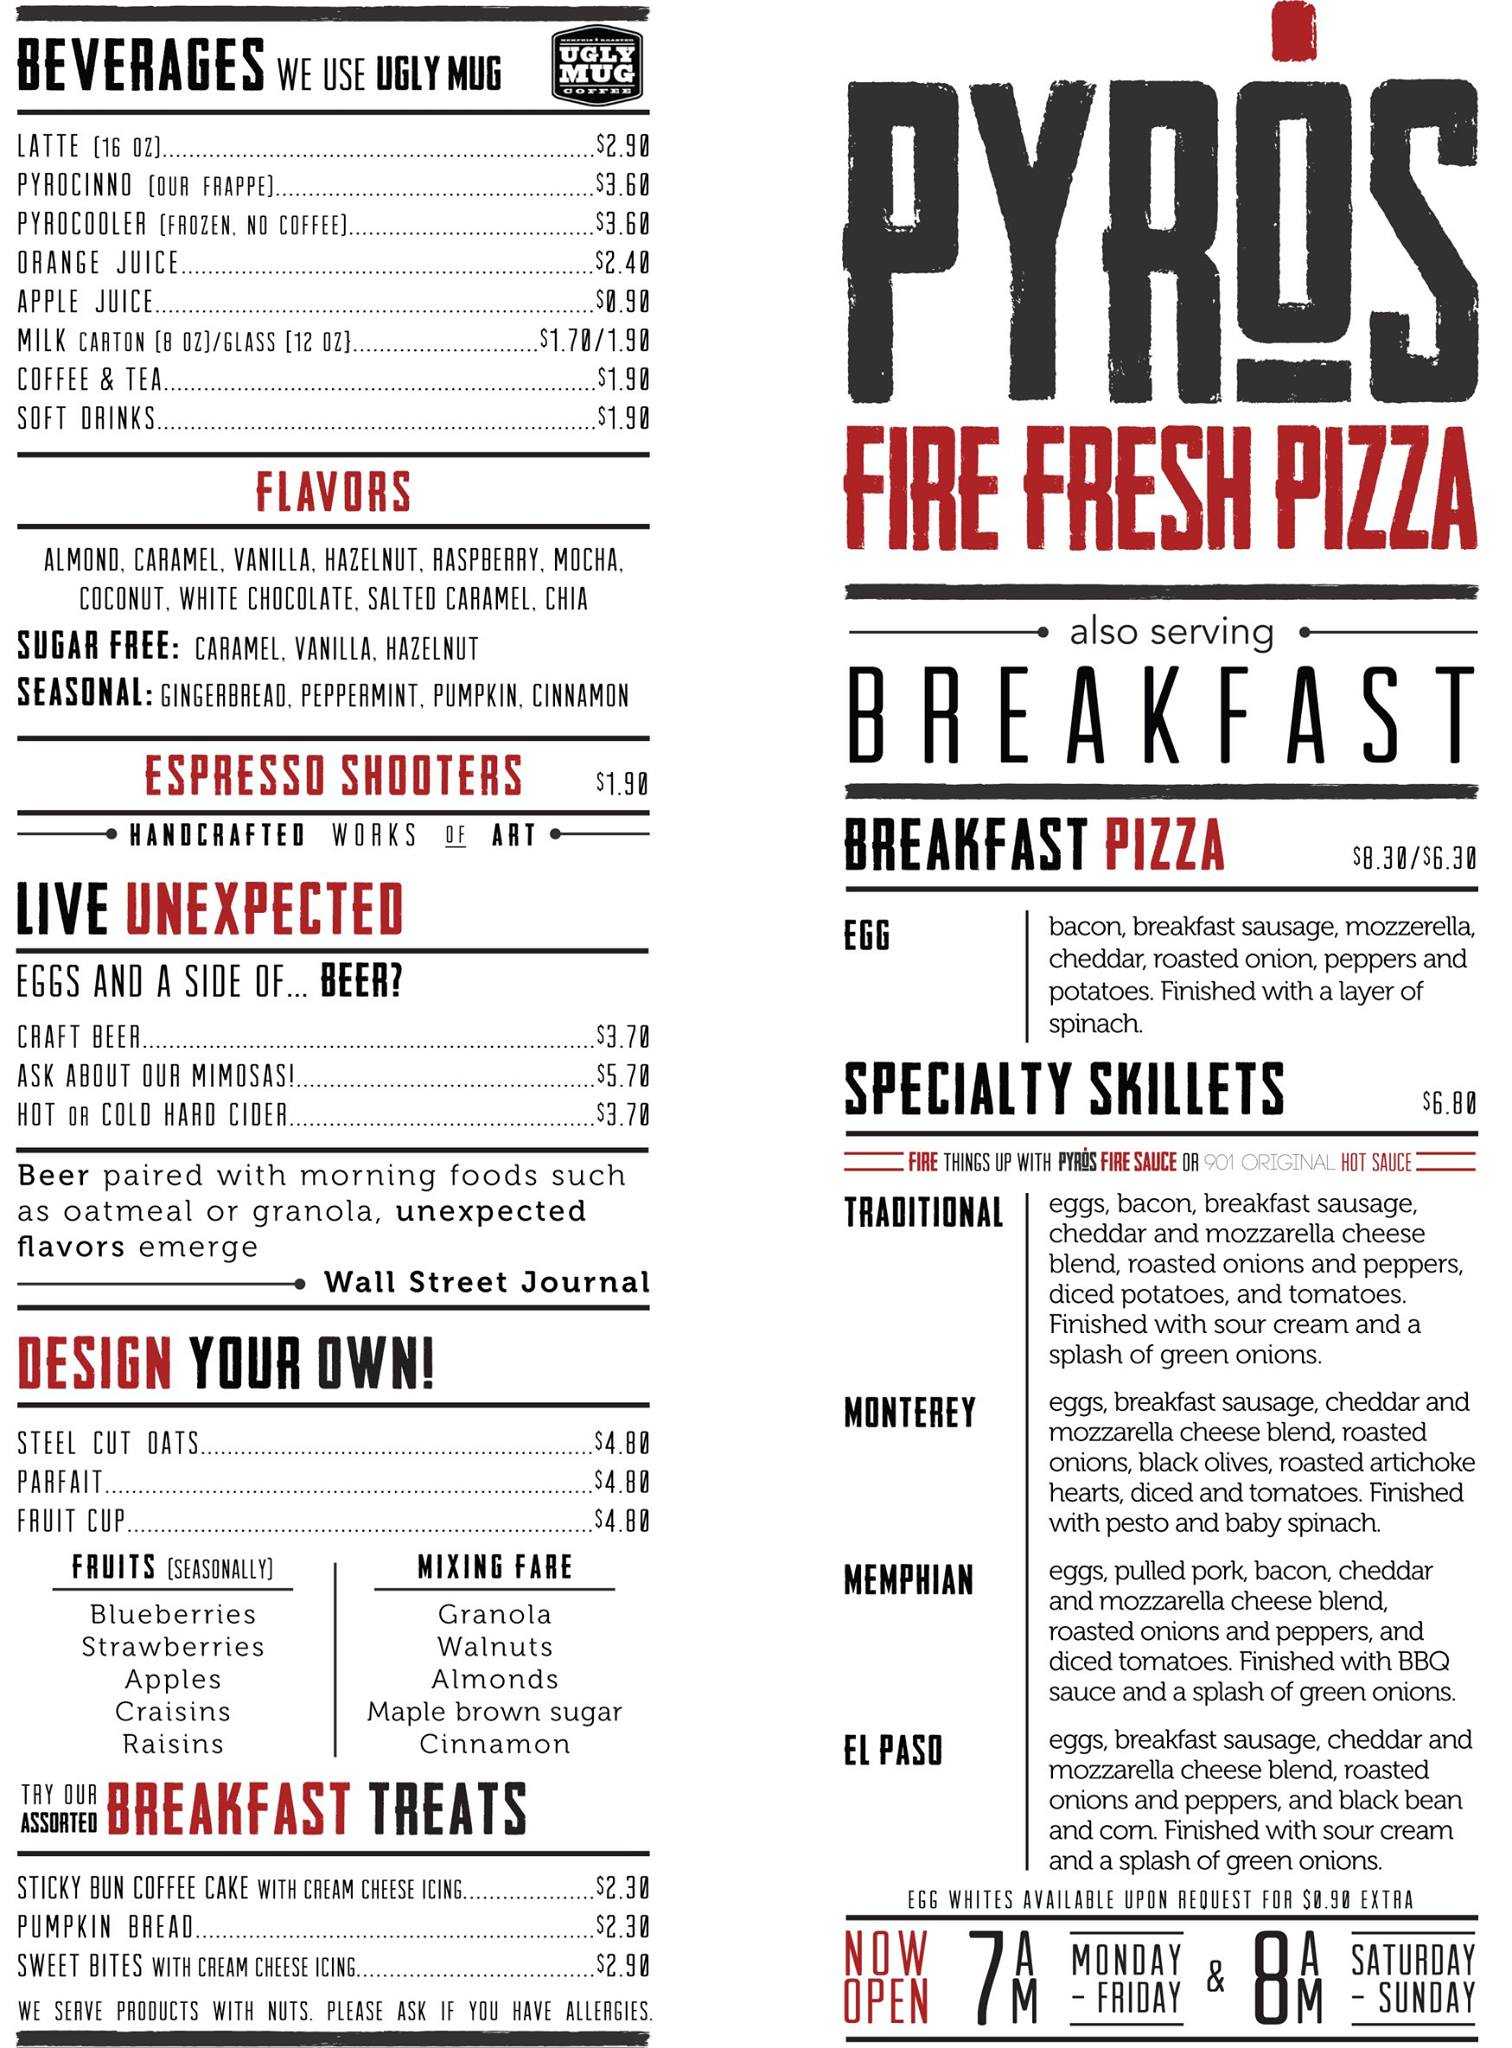 Pyros Fire Fresh Pizza   One of several menu designs completed.